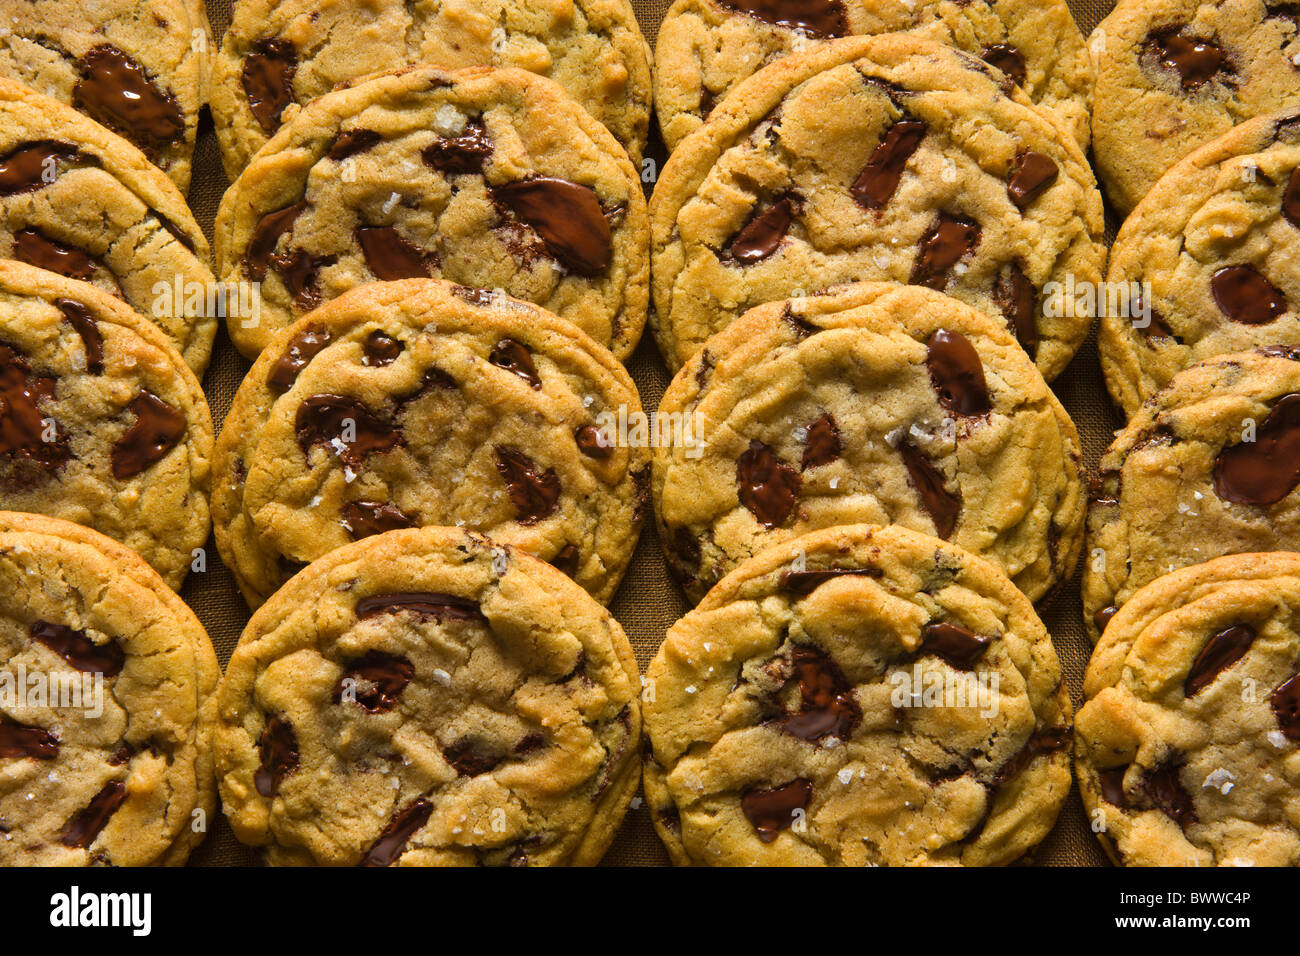 Chocolate Chip Cookies on a Wood Tray over a brown linen napkin. Stock Photo